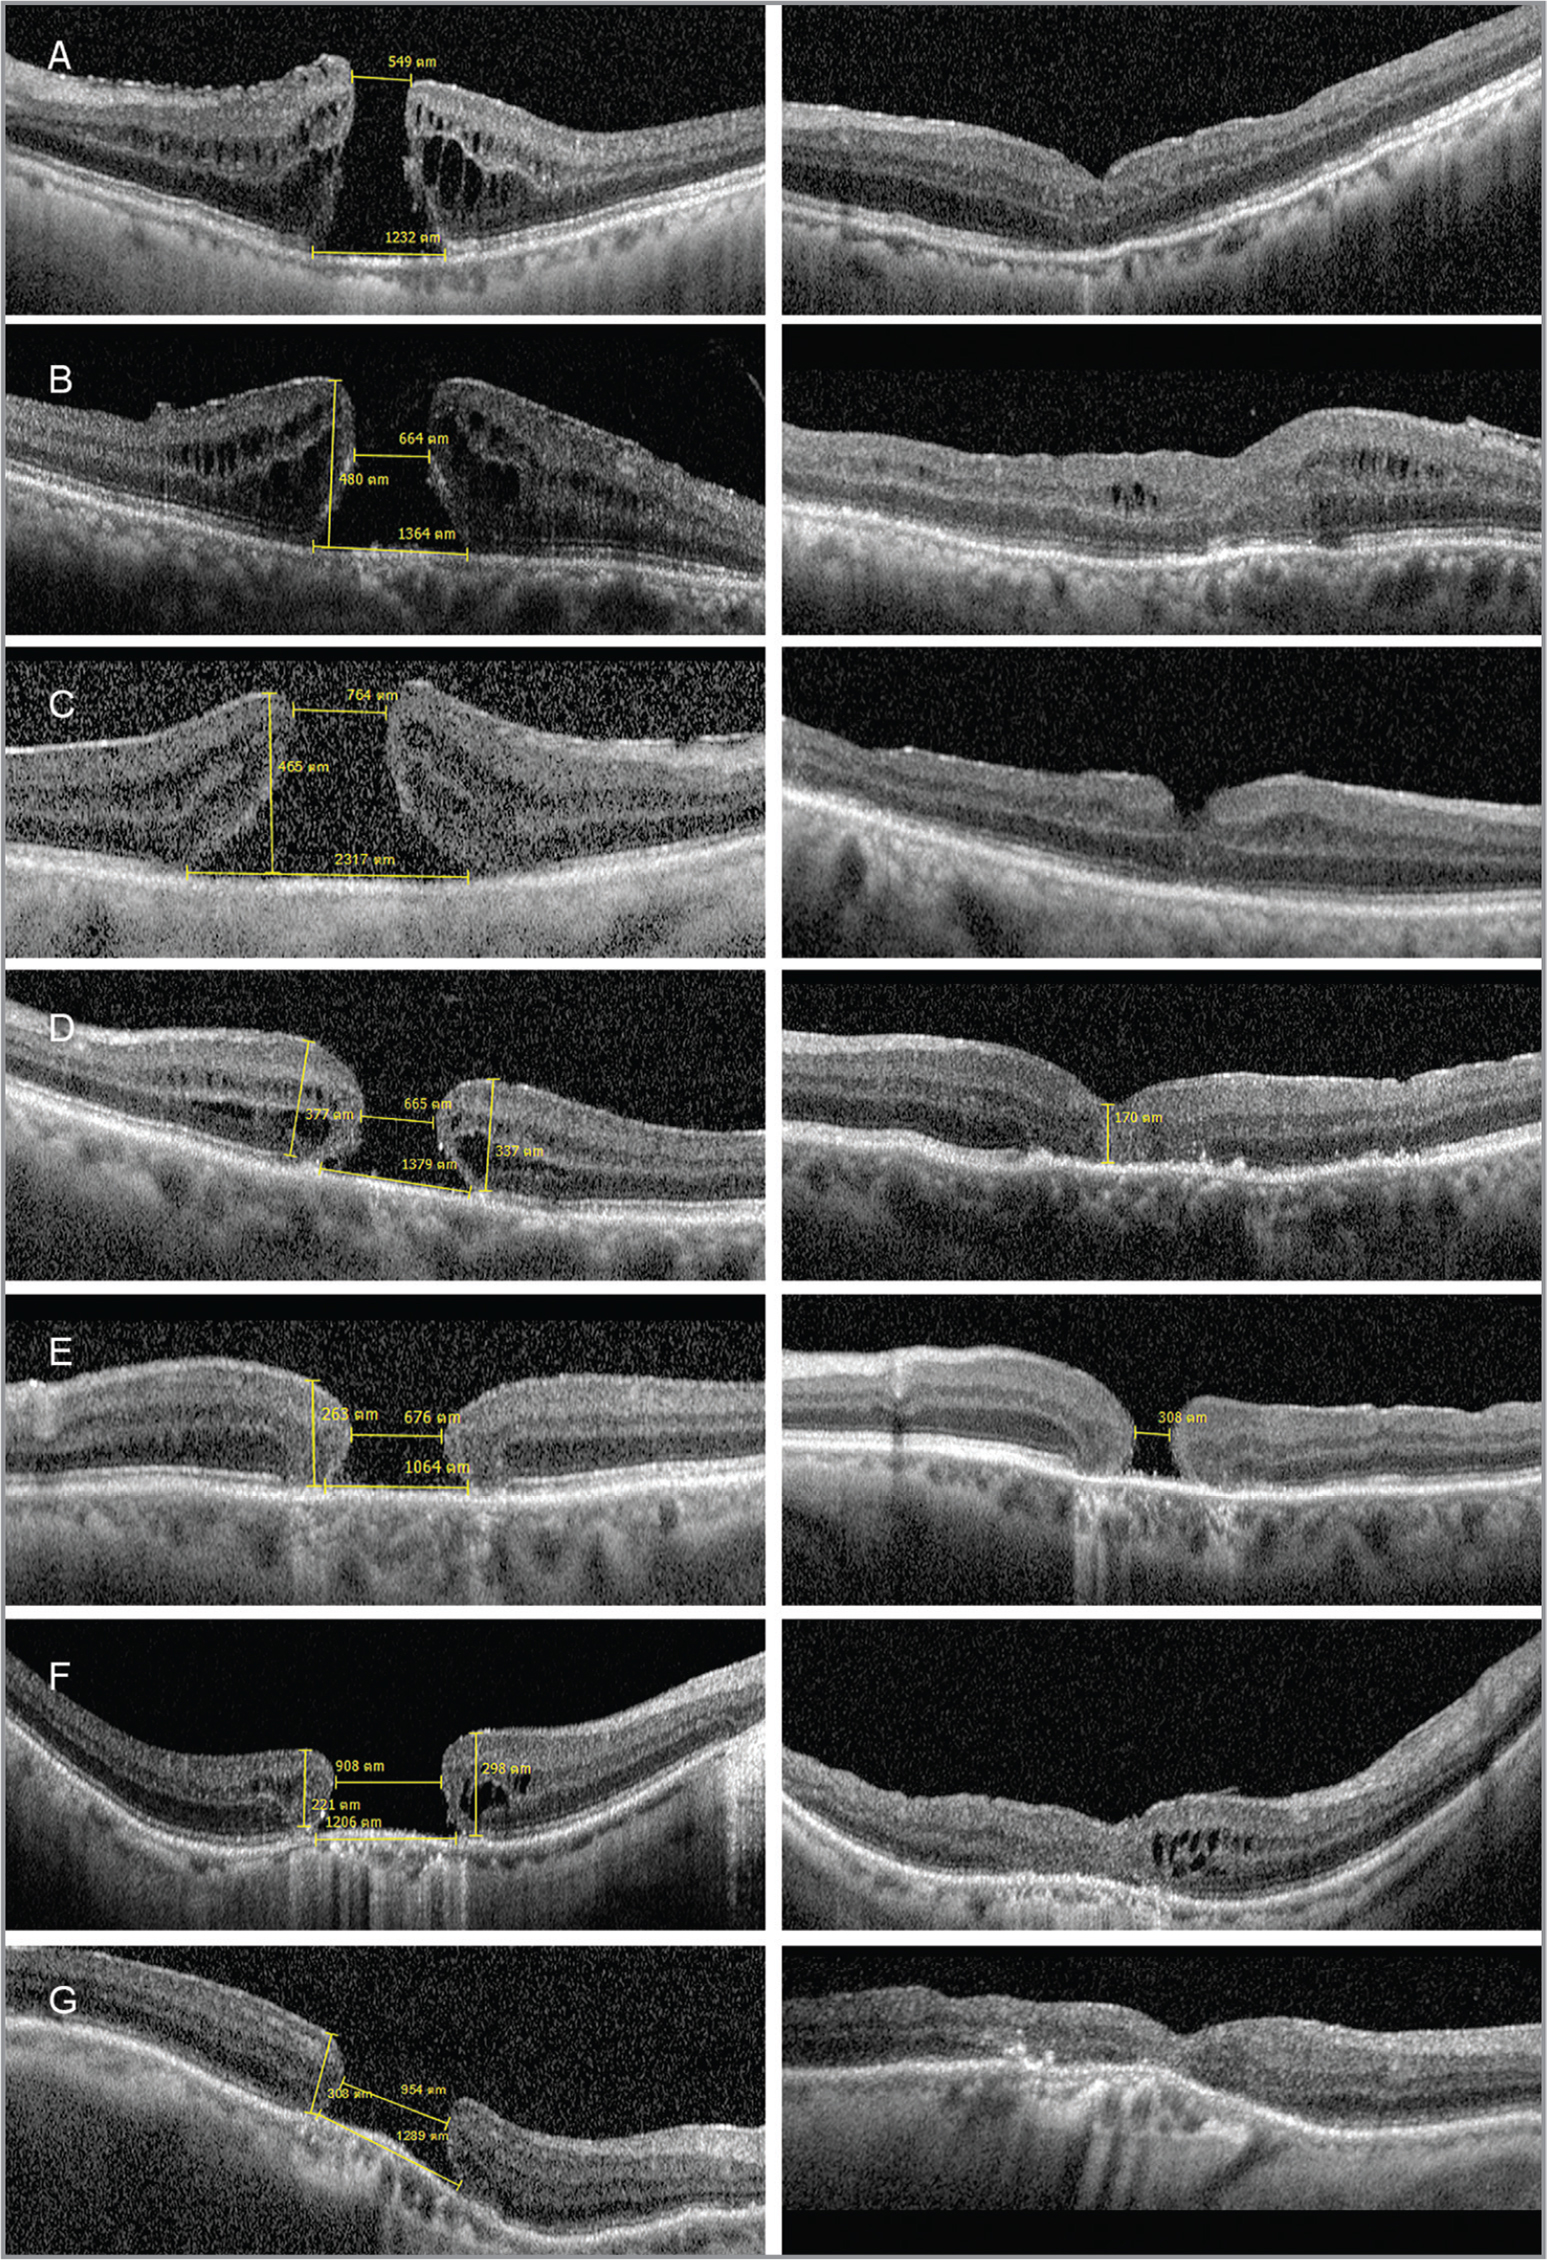 A demonstration of both preoperative optical coherence tomography (OCT) images with macular hole parameters on left column and postoperative OCT images at 6-month follow-up on right column. Case numbers were indicated by using consecutive letters on the left upper corner of each photo.